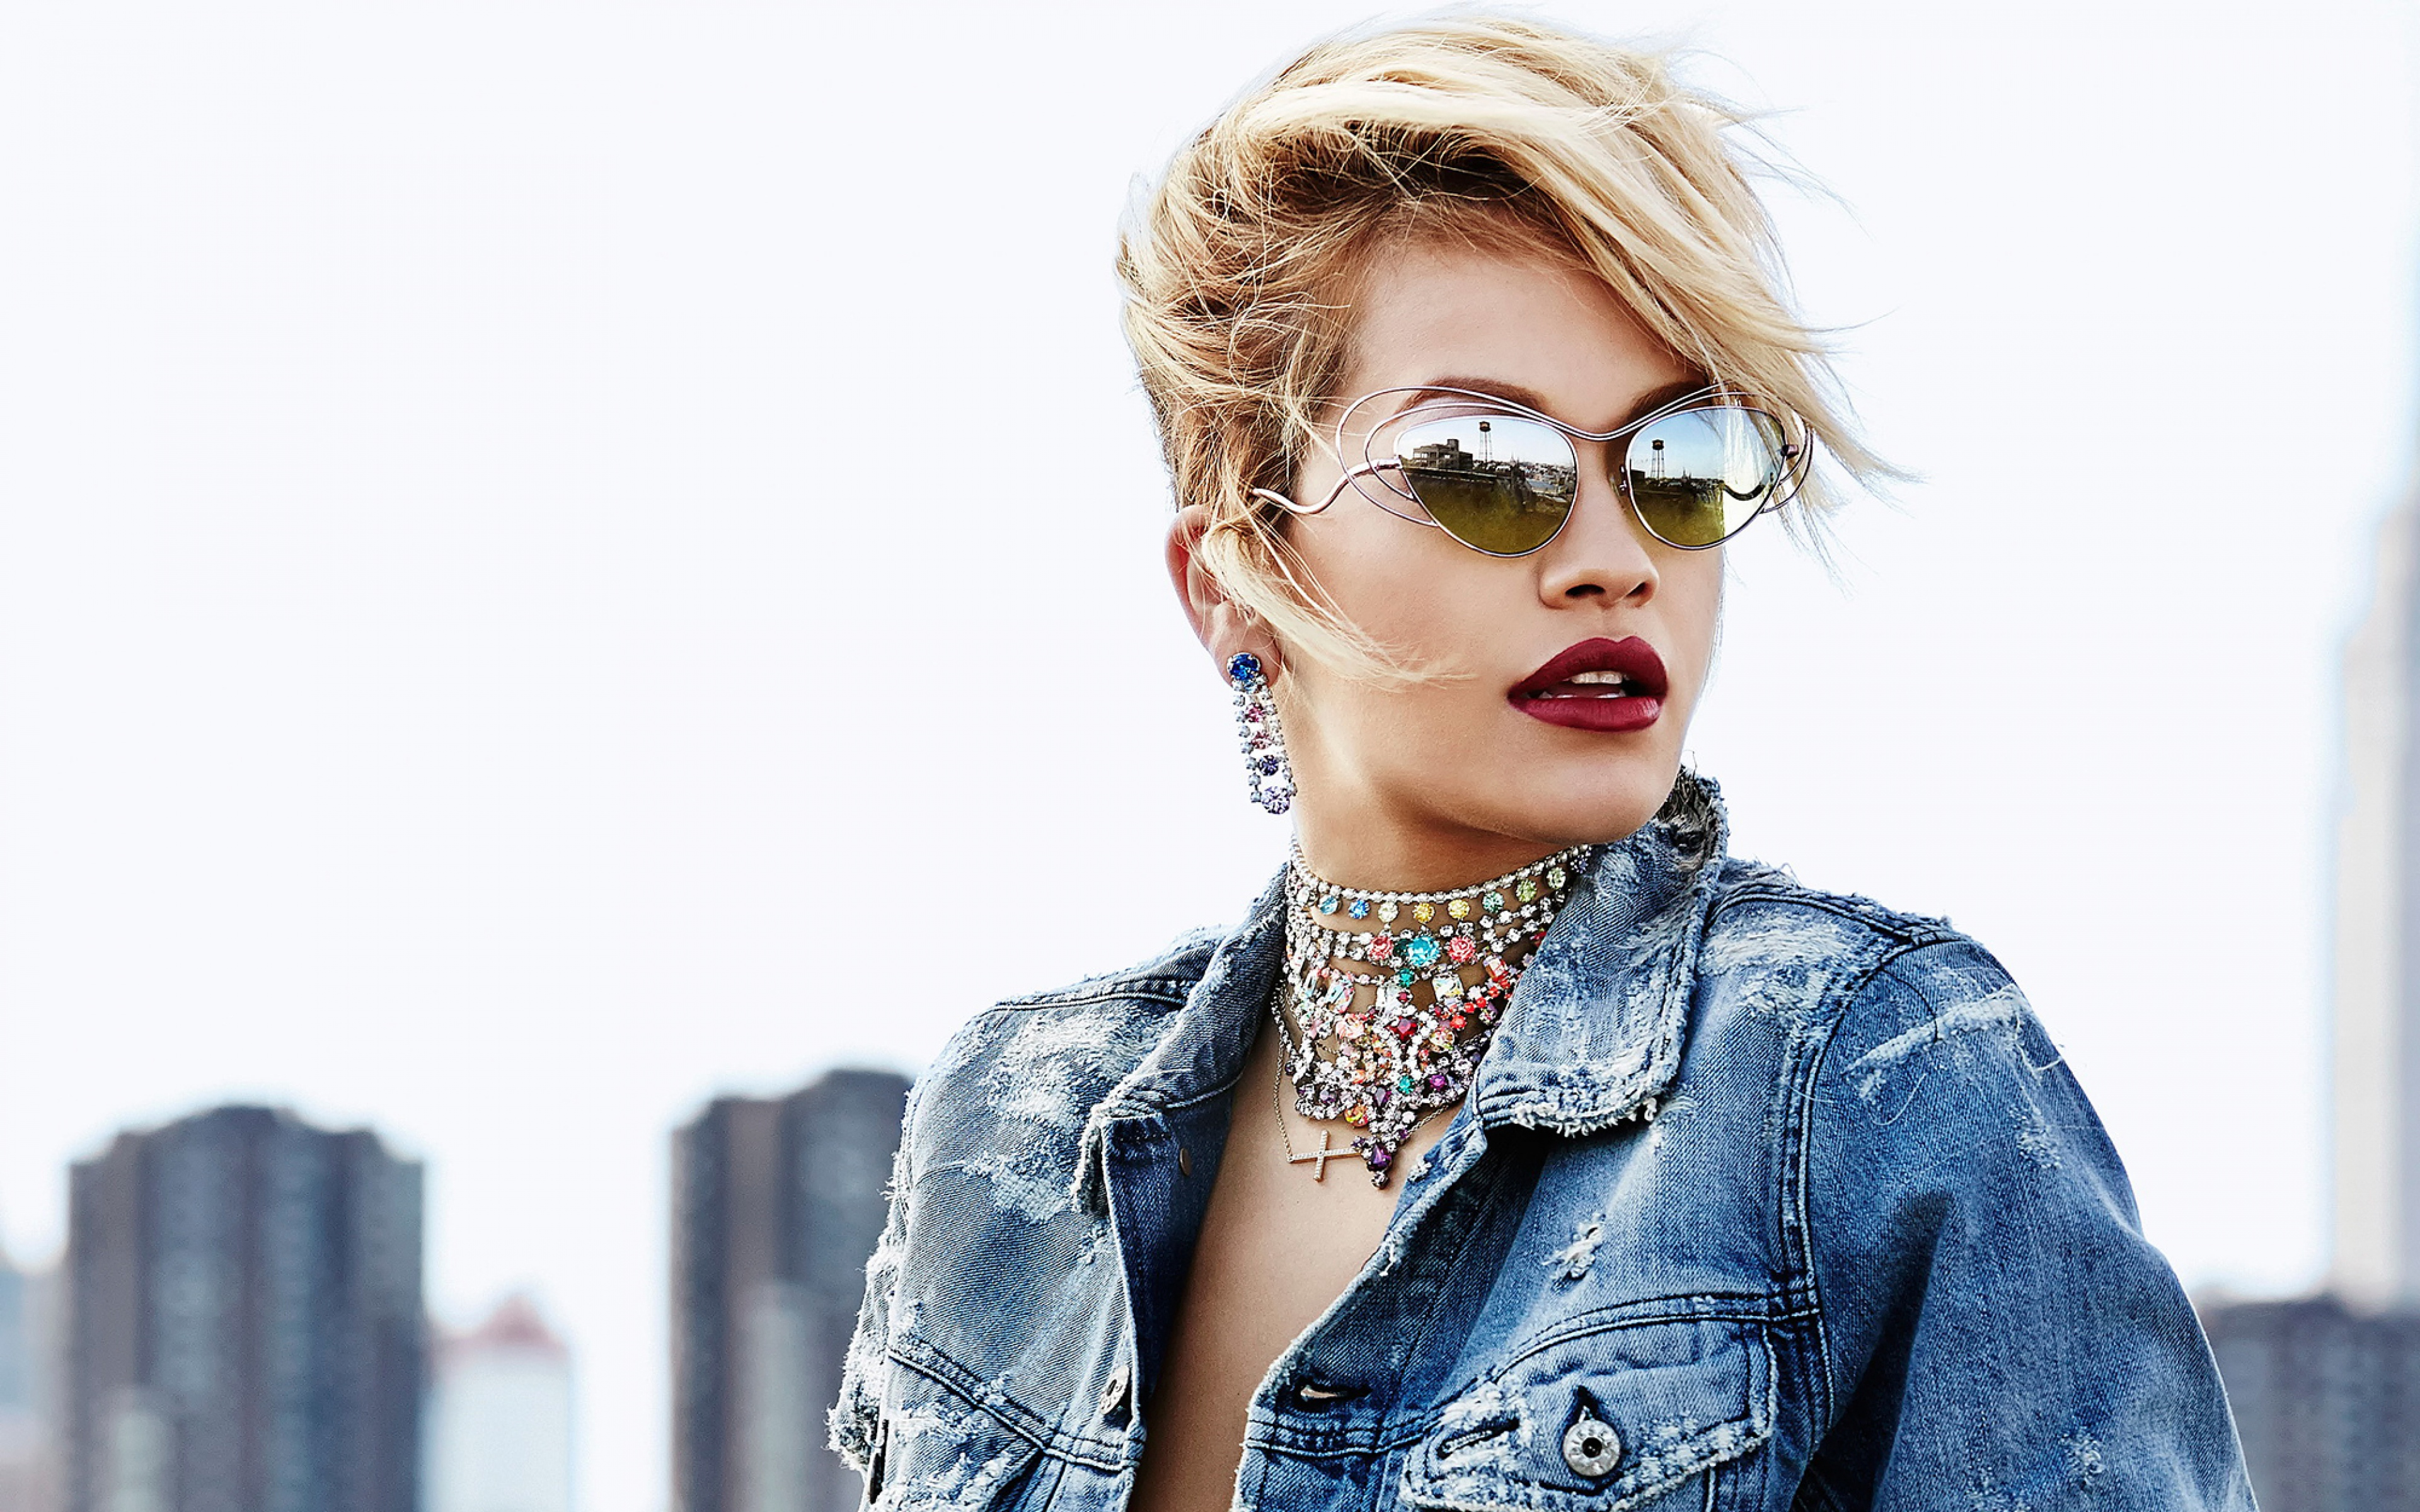 19 Hd Rita Ora Wallpapers Hdwallsource Com